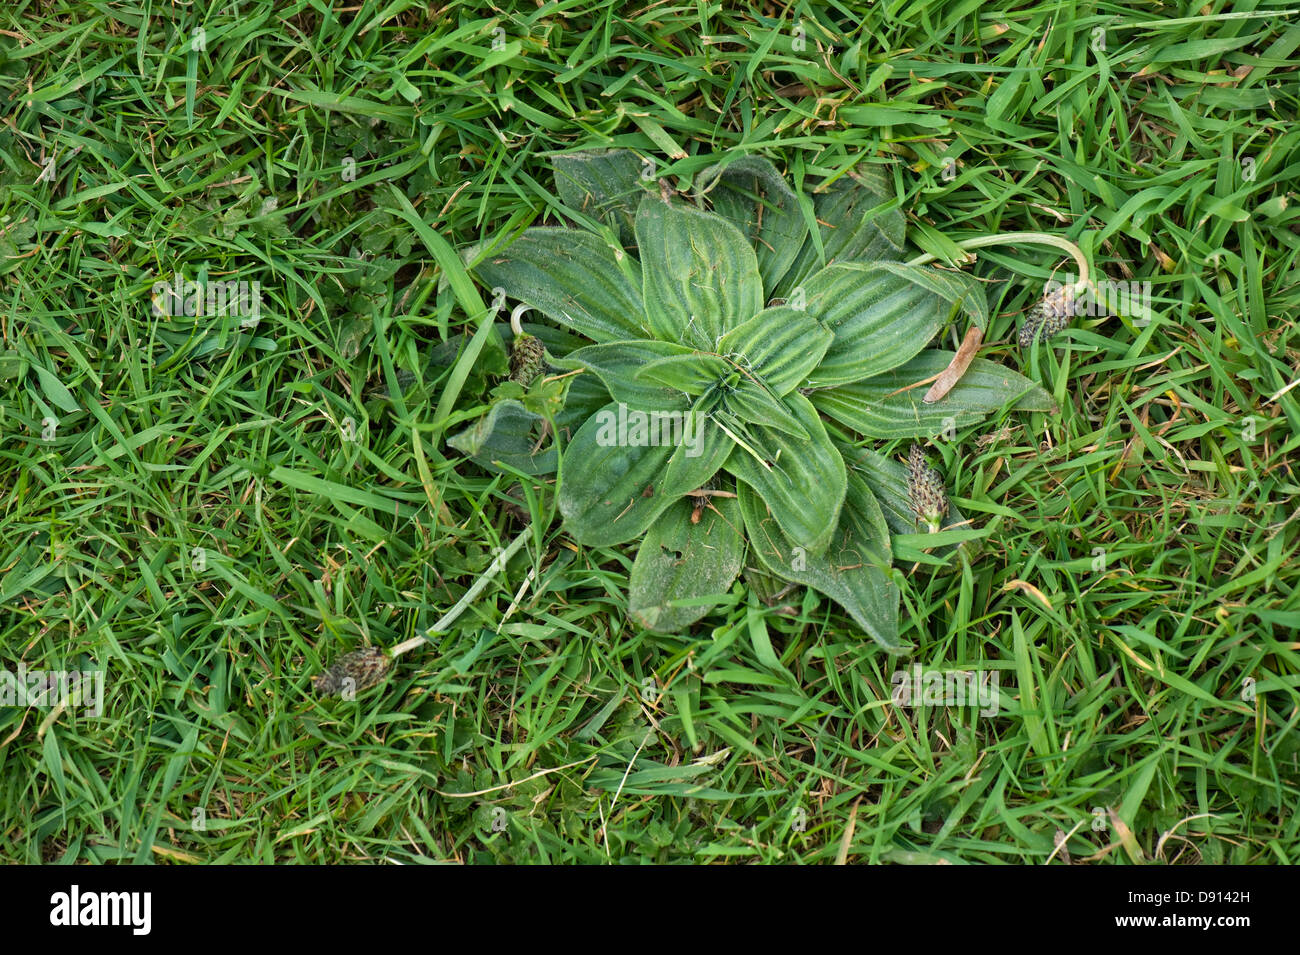 hoary plantain plantago media a weed in lawn grass stock. Black Bedroom Furniture Sets. Home Design Ideas